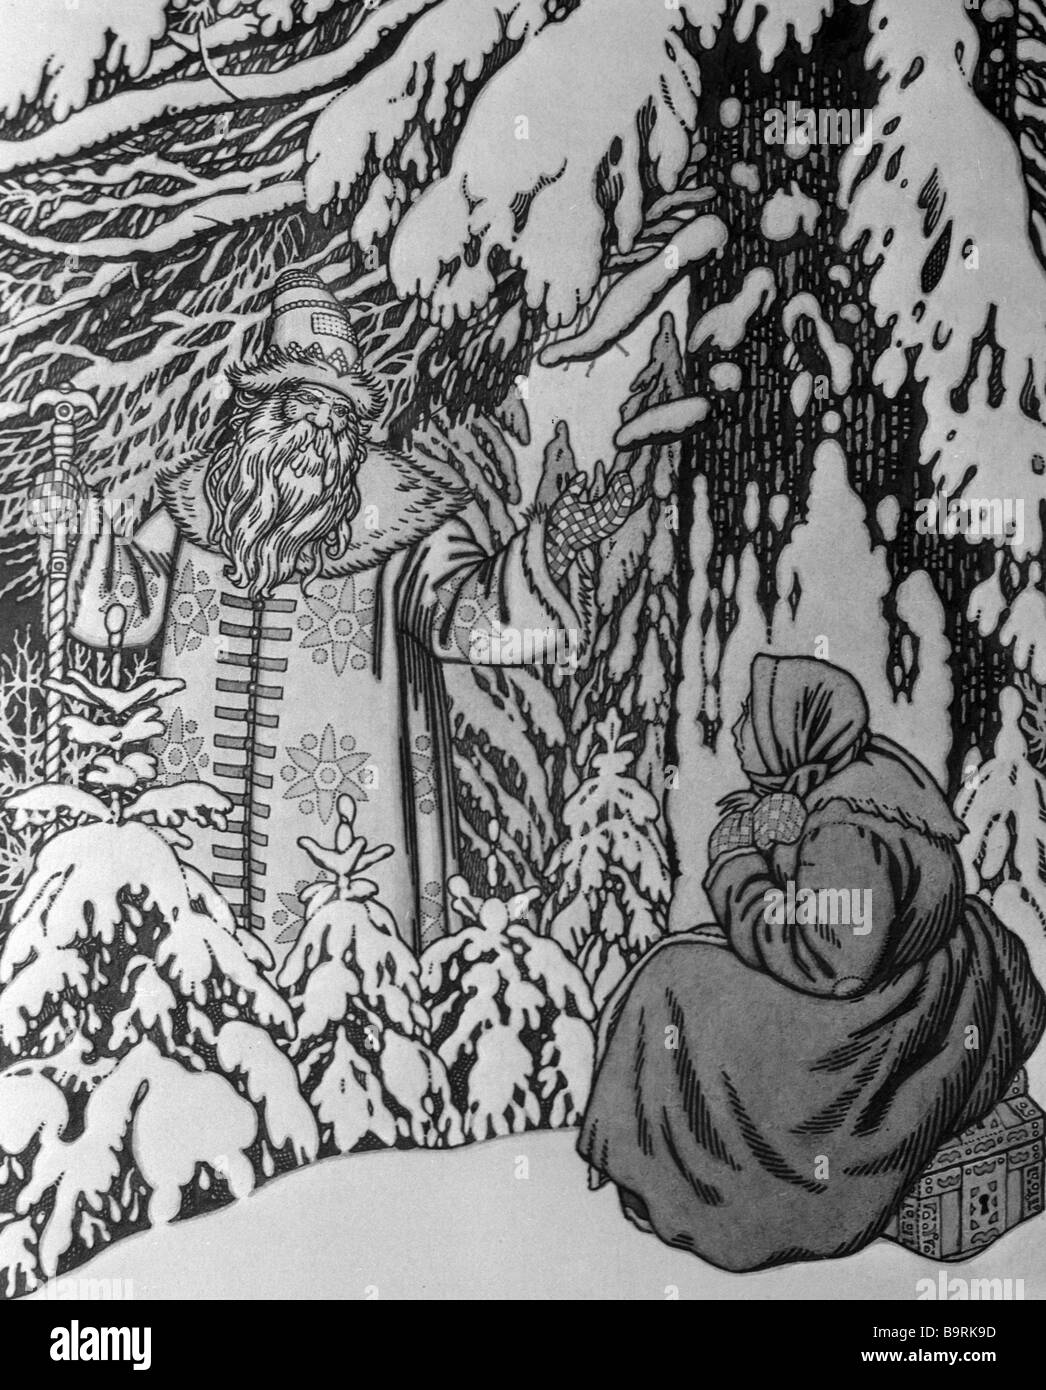 Reproduction of a drawing by Ivan Yakovlevich Bilibin to Morozko old Russian fairytale - Stock Image